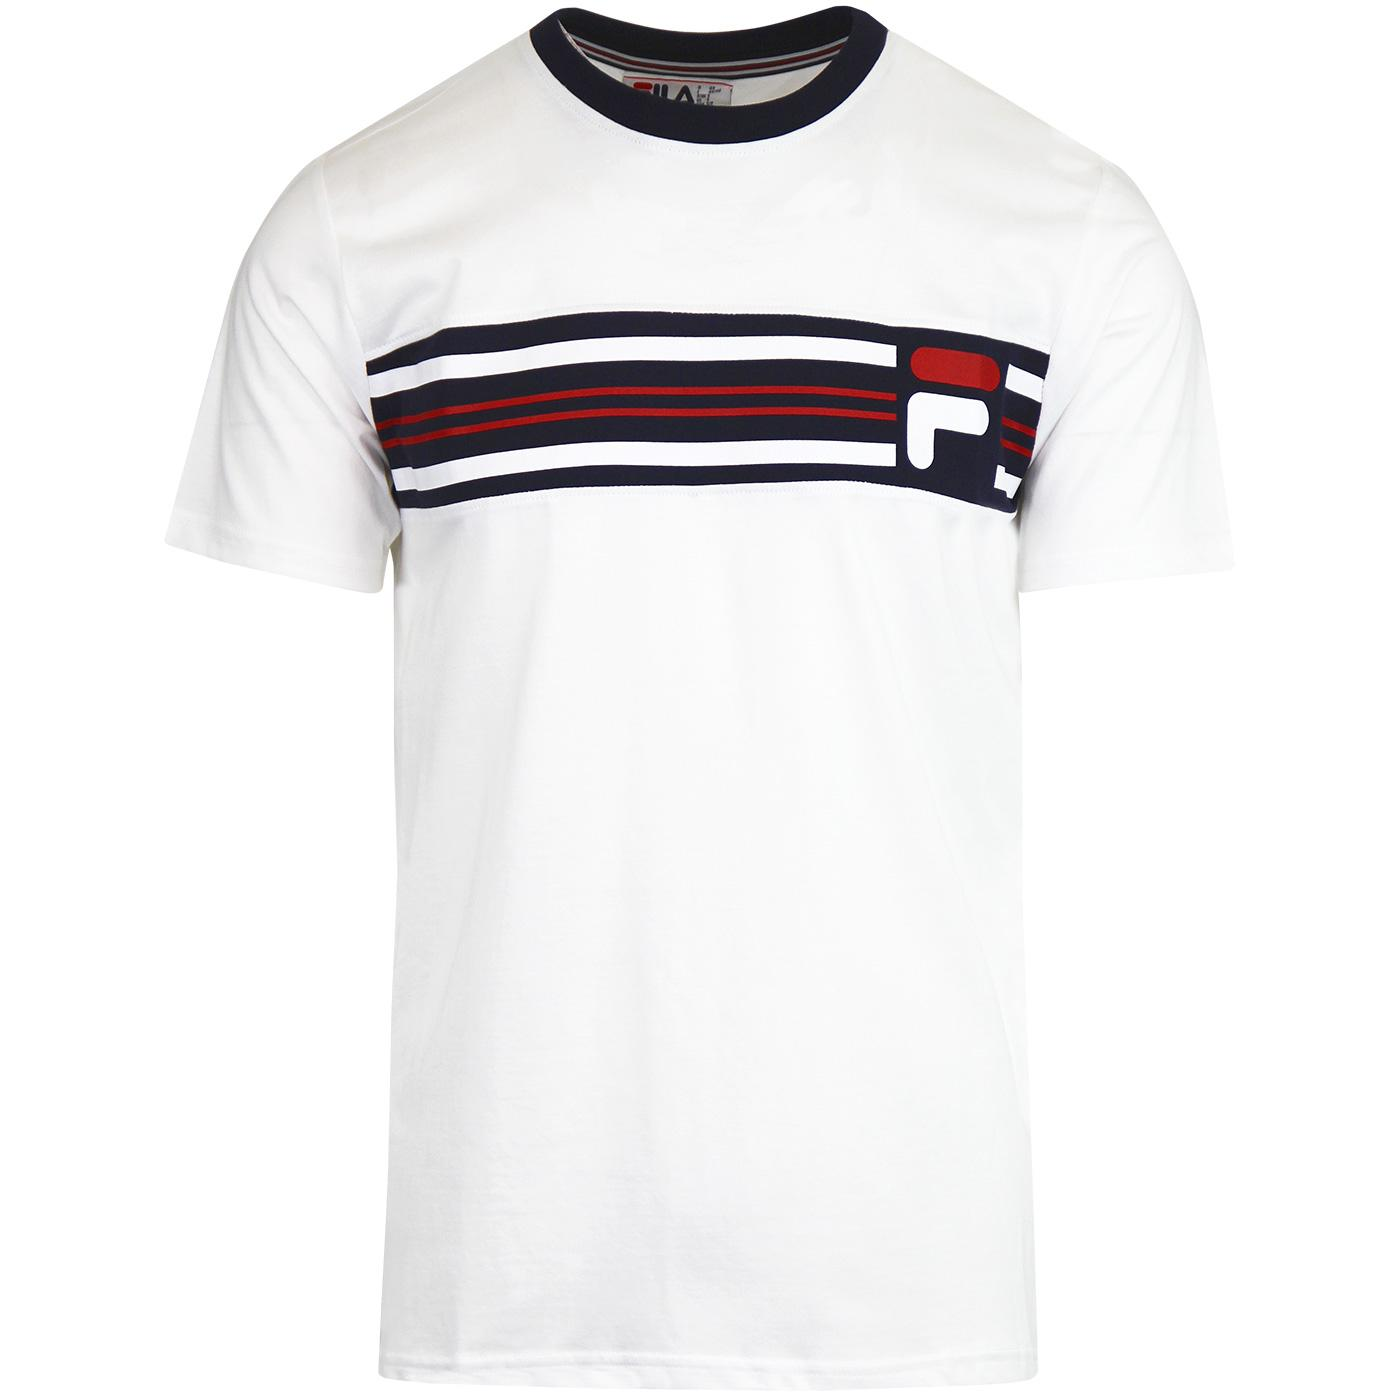 b065dbc311cf FILA VINTAGE Bruno 3 80s Casuals Cut & Sew T-shirt in White